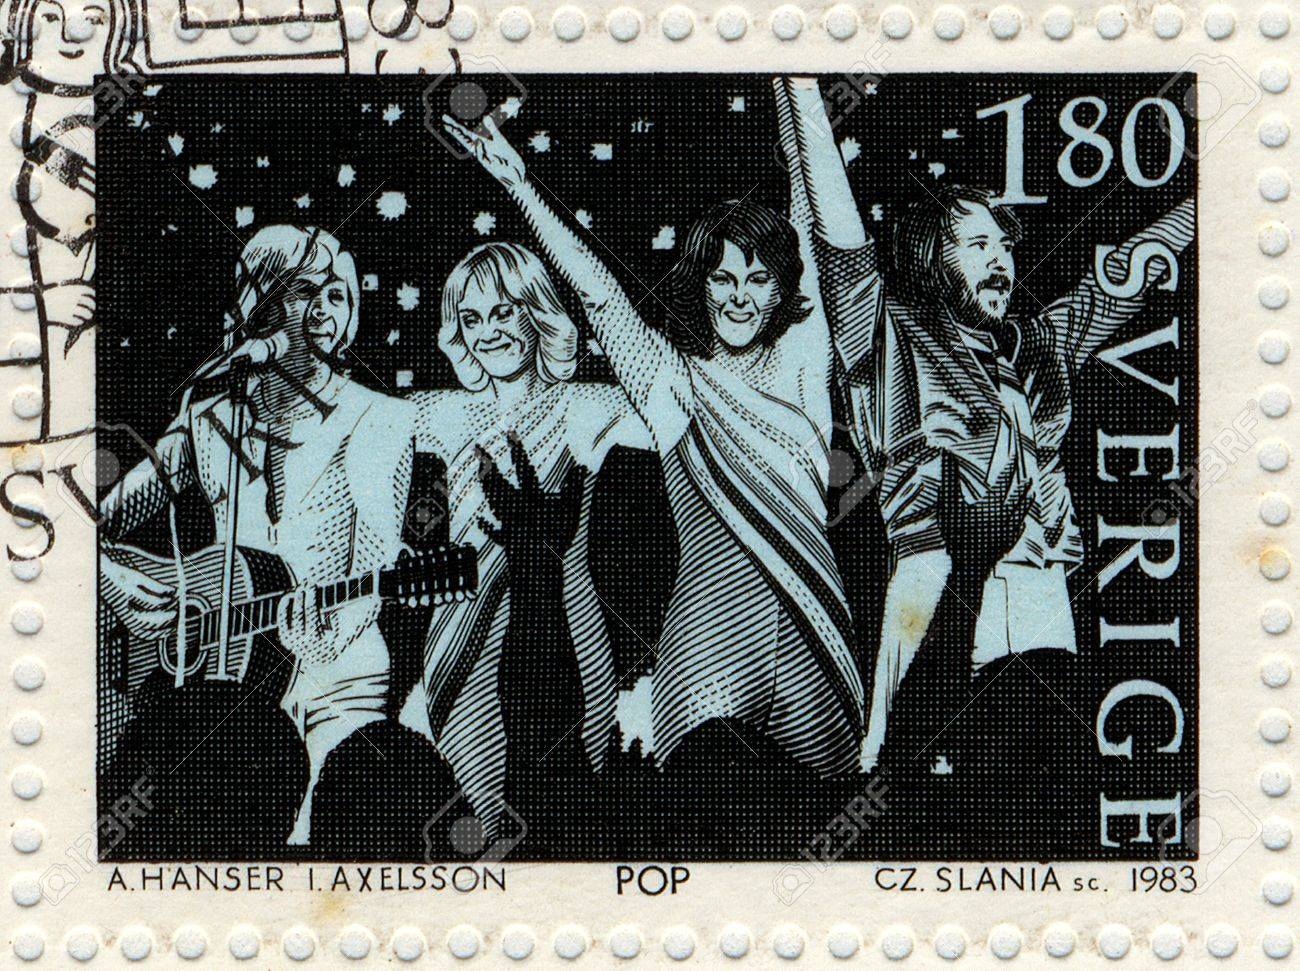 SWEDEN - CIRCA 1983  Vintage postage stamp issued by the Swedish Post to honor the pop music group Abba, circa 1983  Stock Photo - 13072773